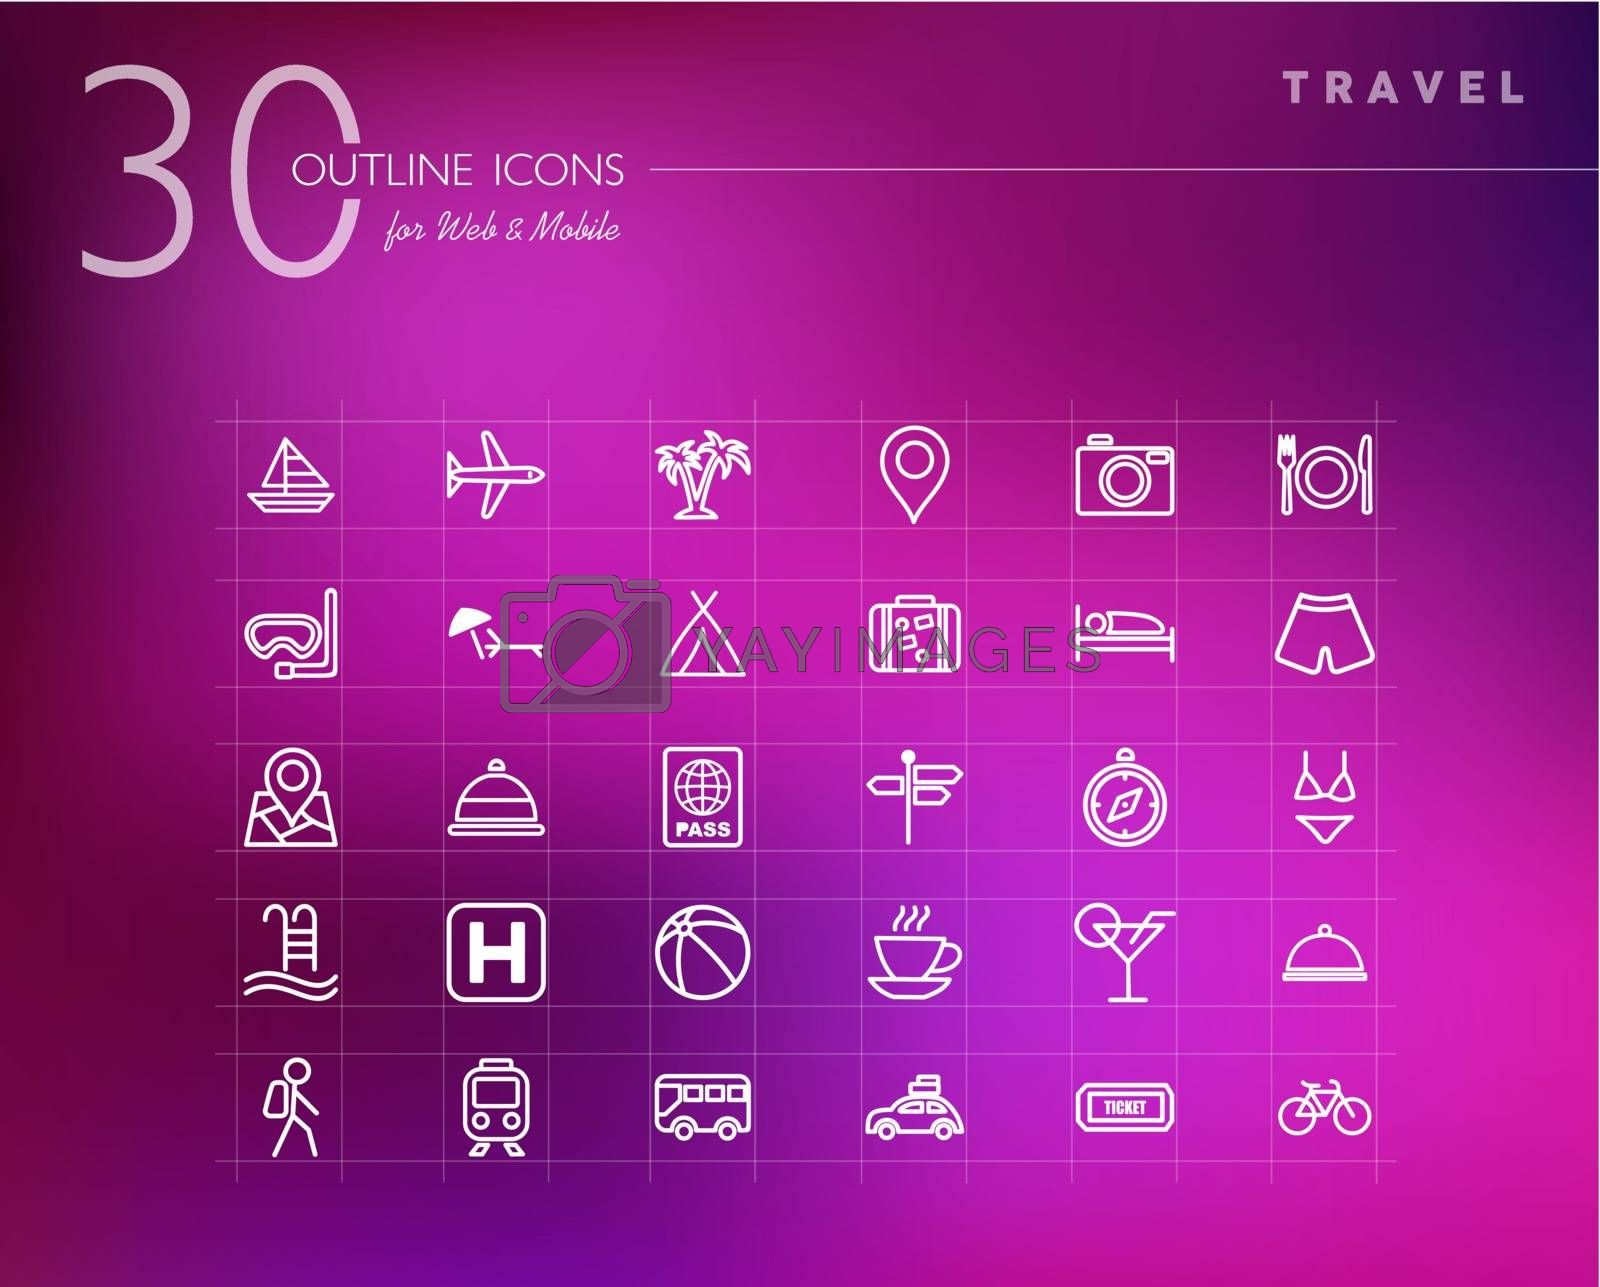 Travel outline icons set for web and mobile app. EPS10 vector file organized in layers for easy editing.